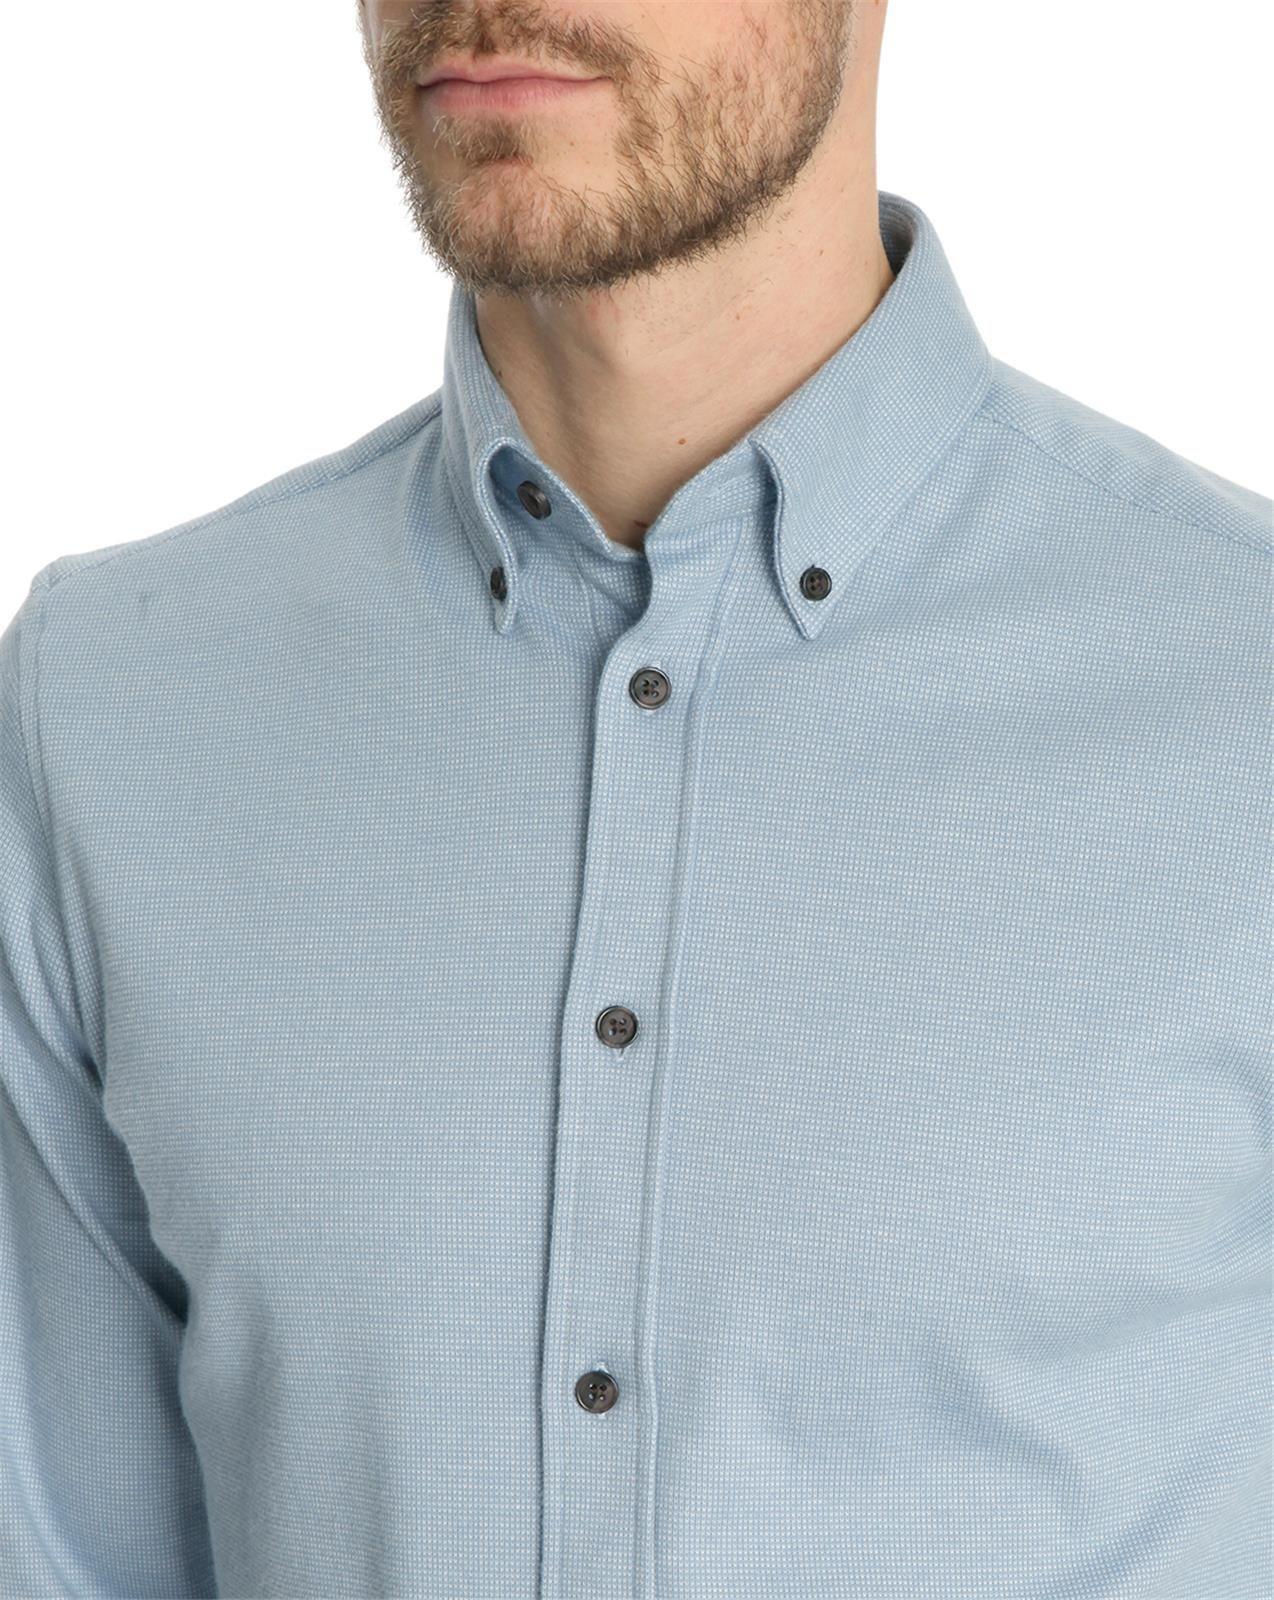 Menlook Label Smith Knitted Blue Button Down Collar Shirt